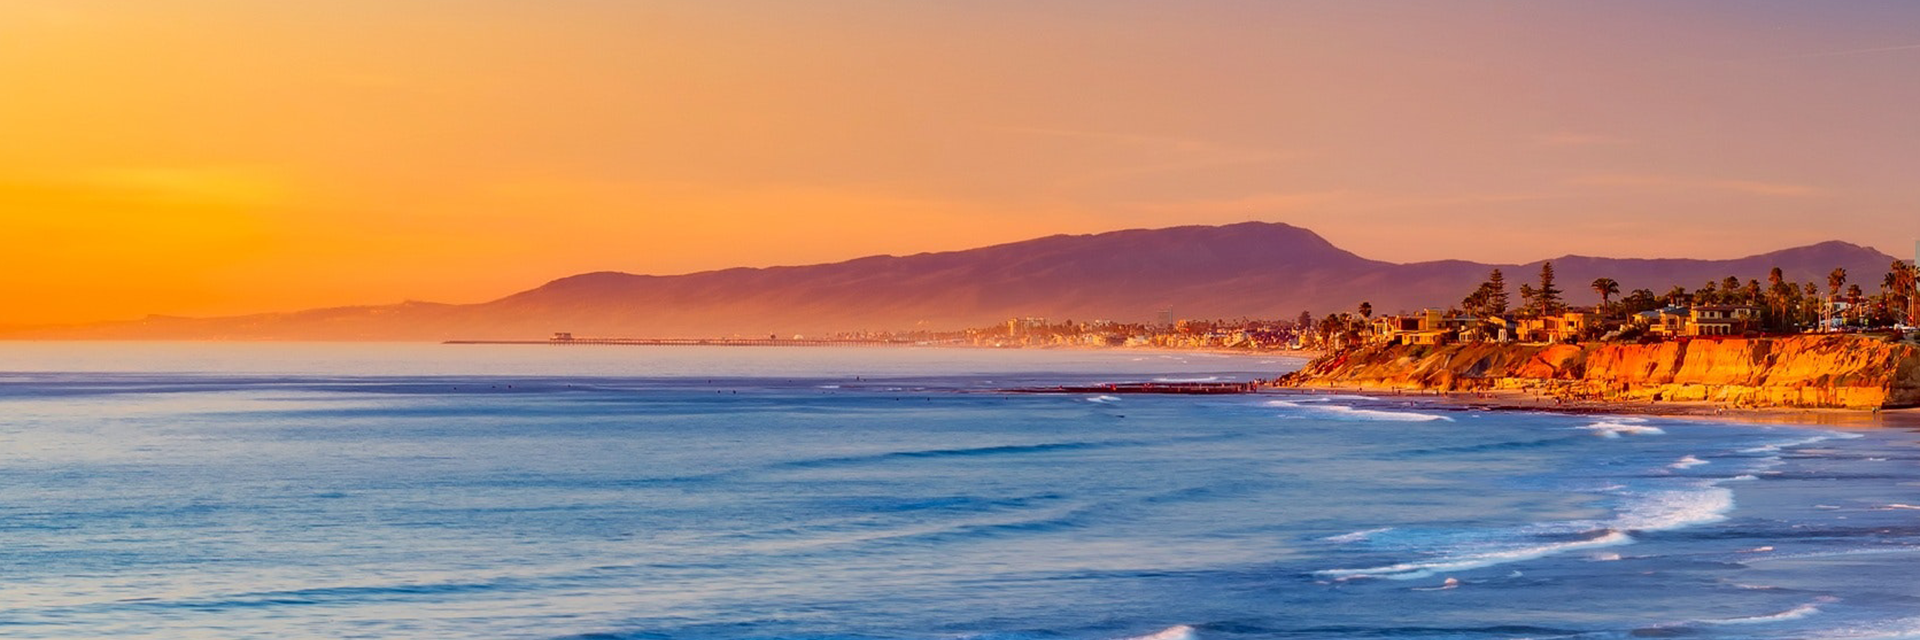 A sunset view of a beach in Southern California